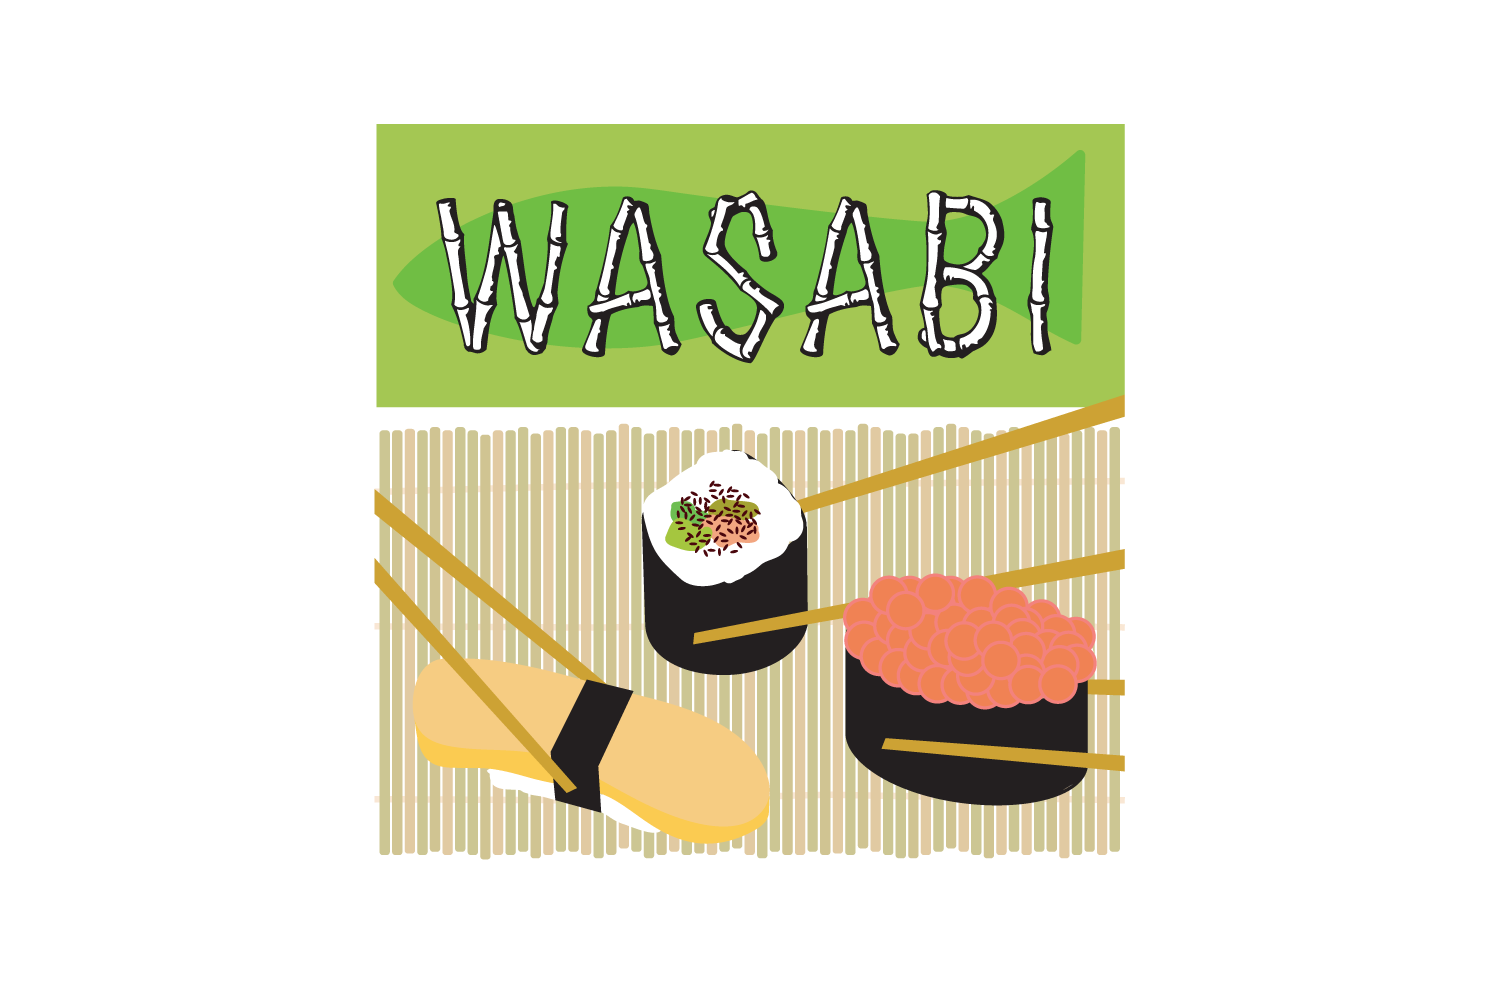 evite-wasabi.png